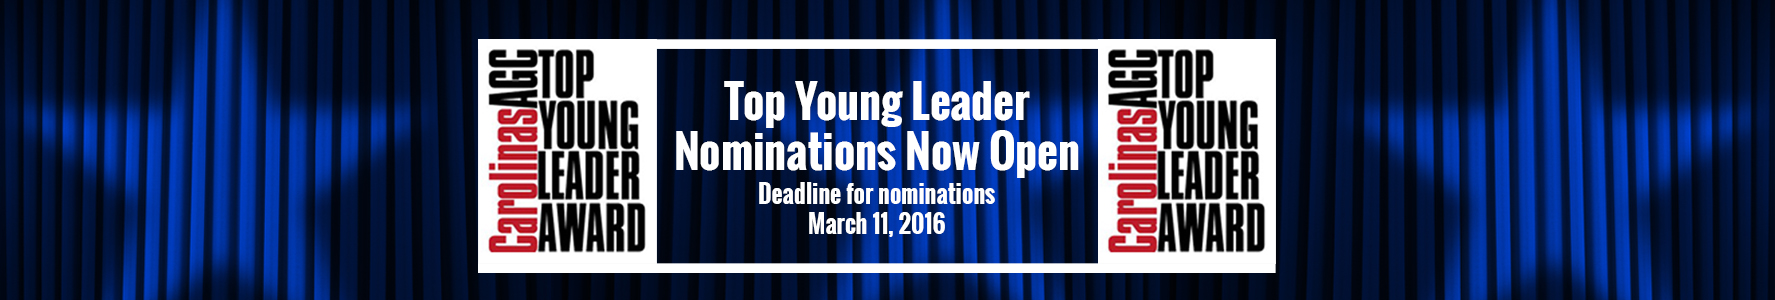 Top Young Leader Awards